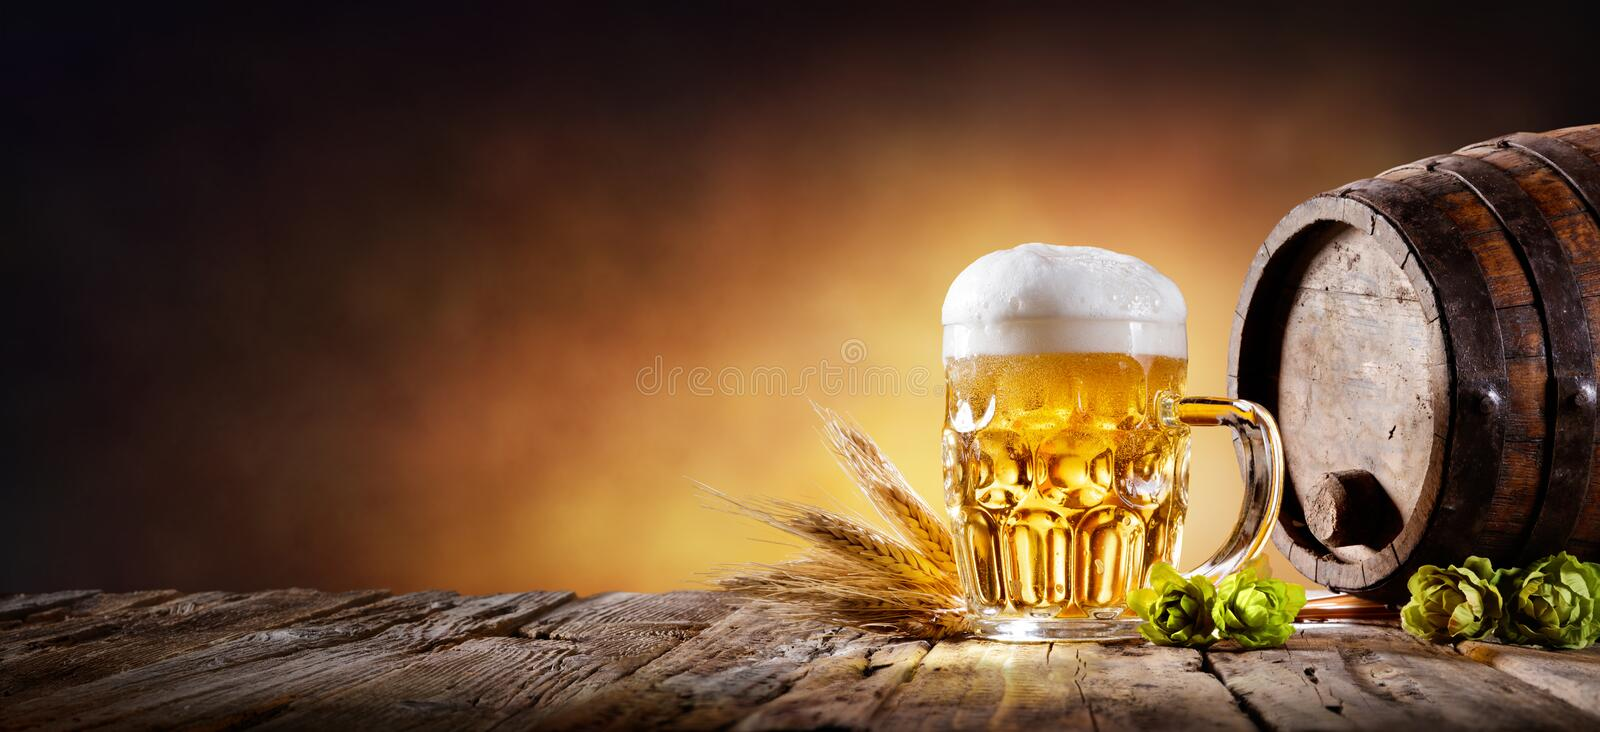 Beer Mug With Wheat And Hops In Cellar royalty free stock photography